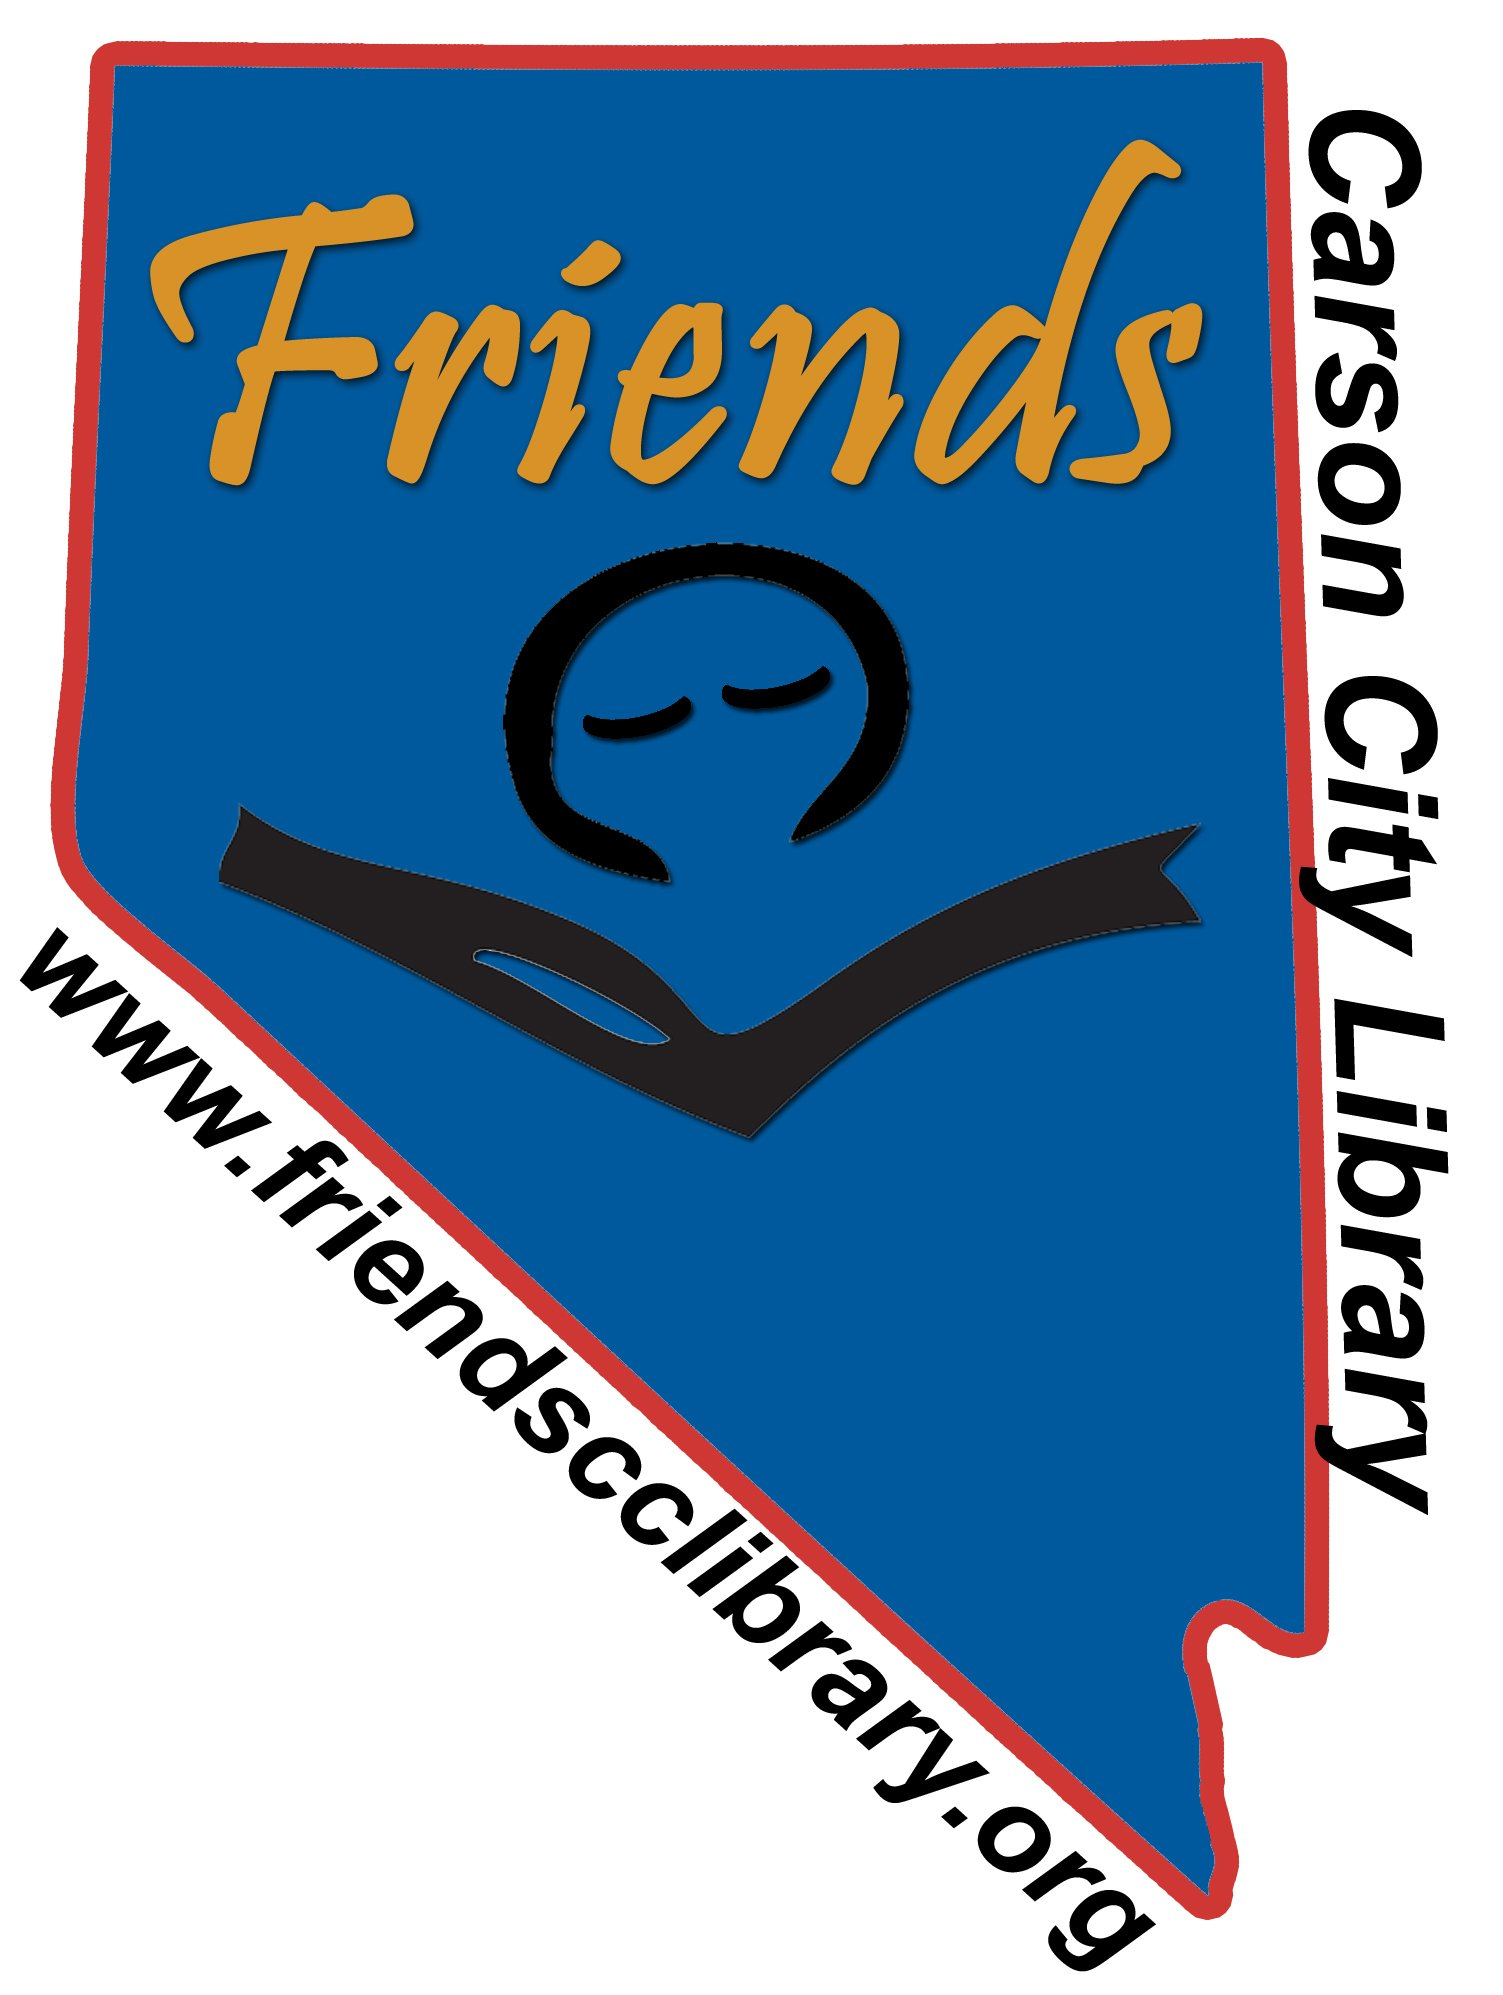 Friends of the Carson City Library